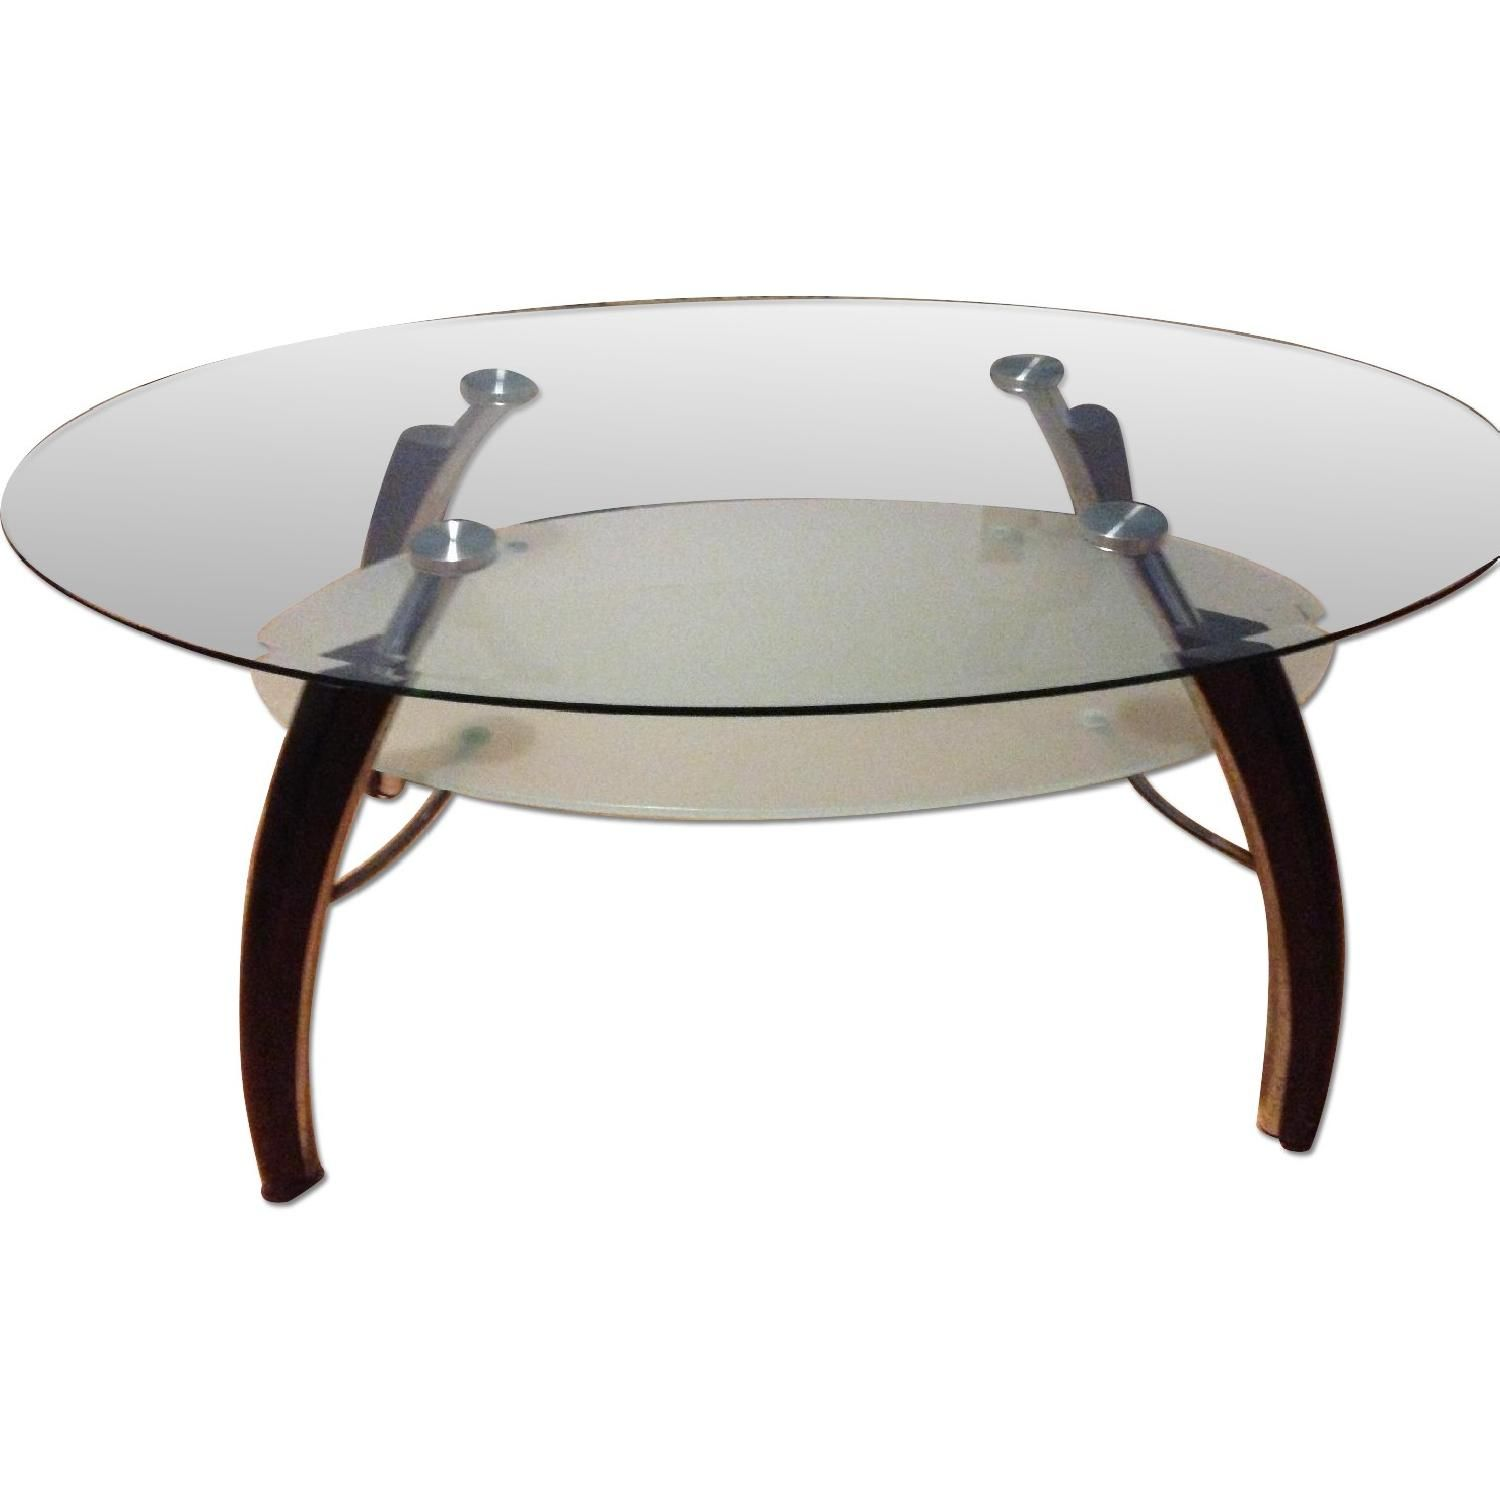 Modern Coffee Table | Modern coffee tables, Coffee tables ...